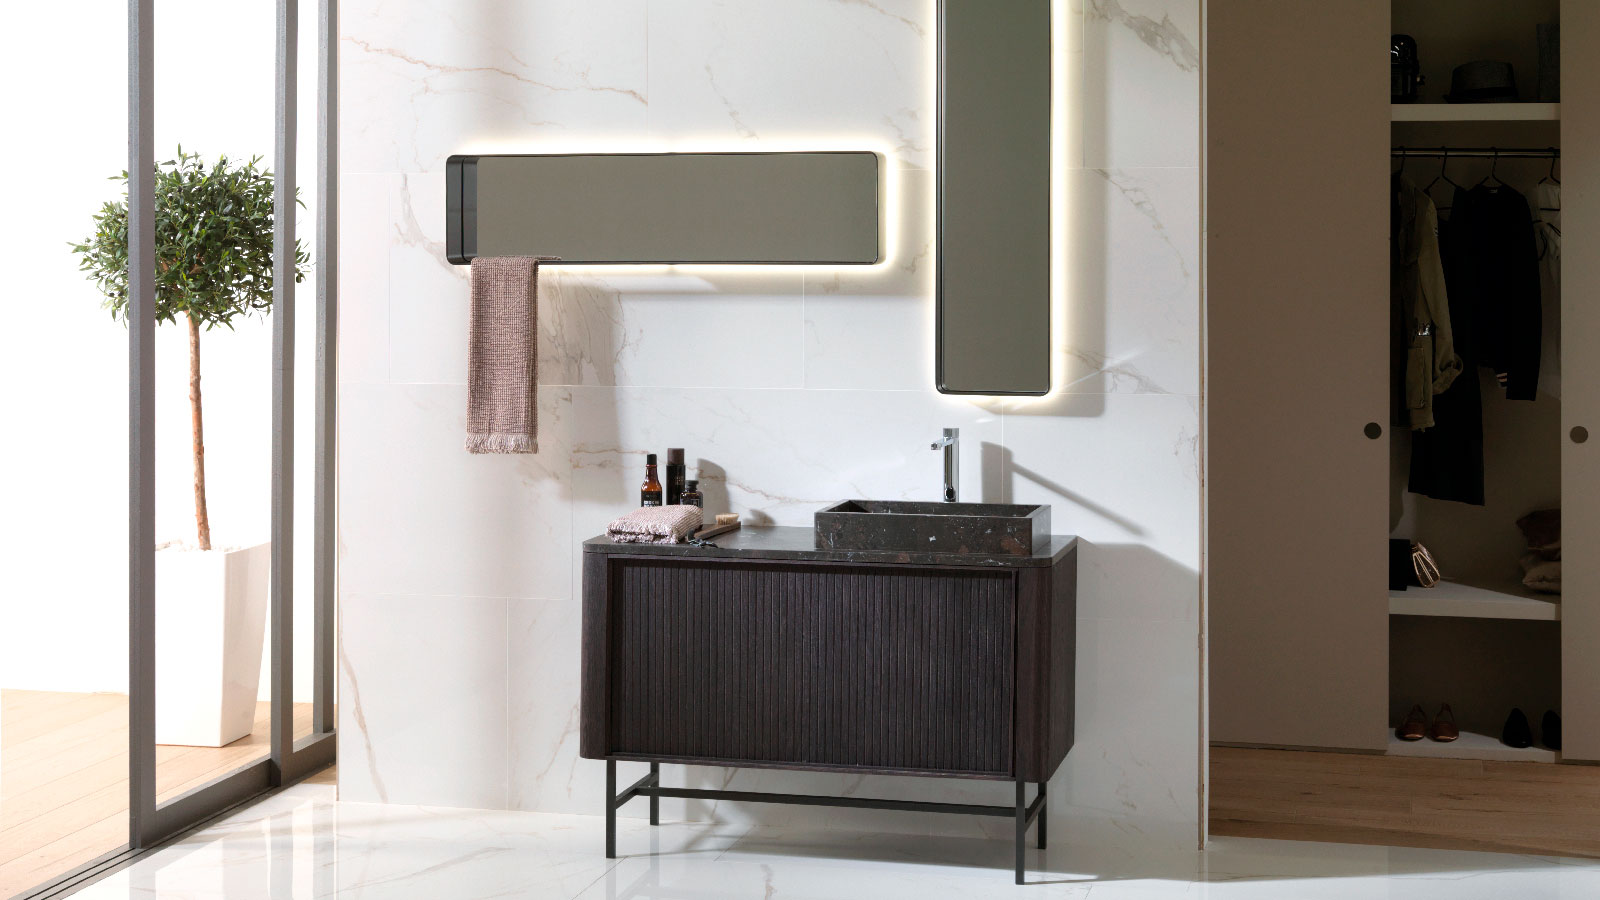 Blind from Gamadecor, a unique bathroom with retro style